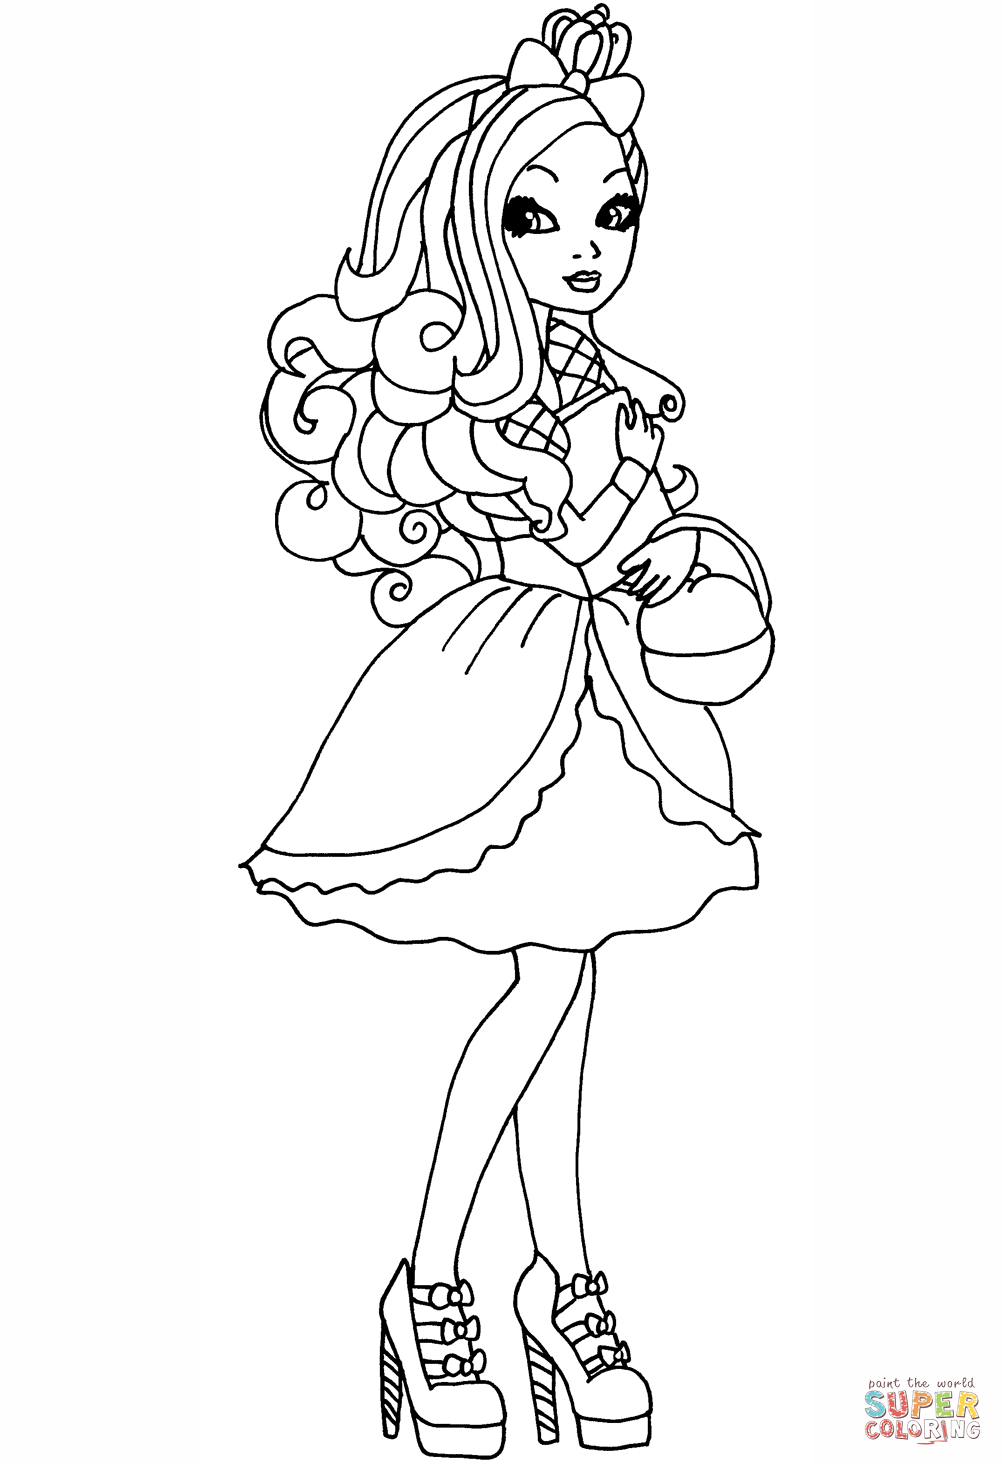 1003x1466 Ever After High Apple Coloring Page Galeria